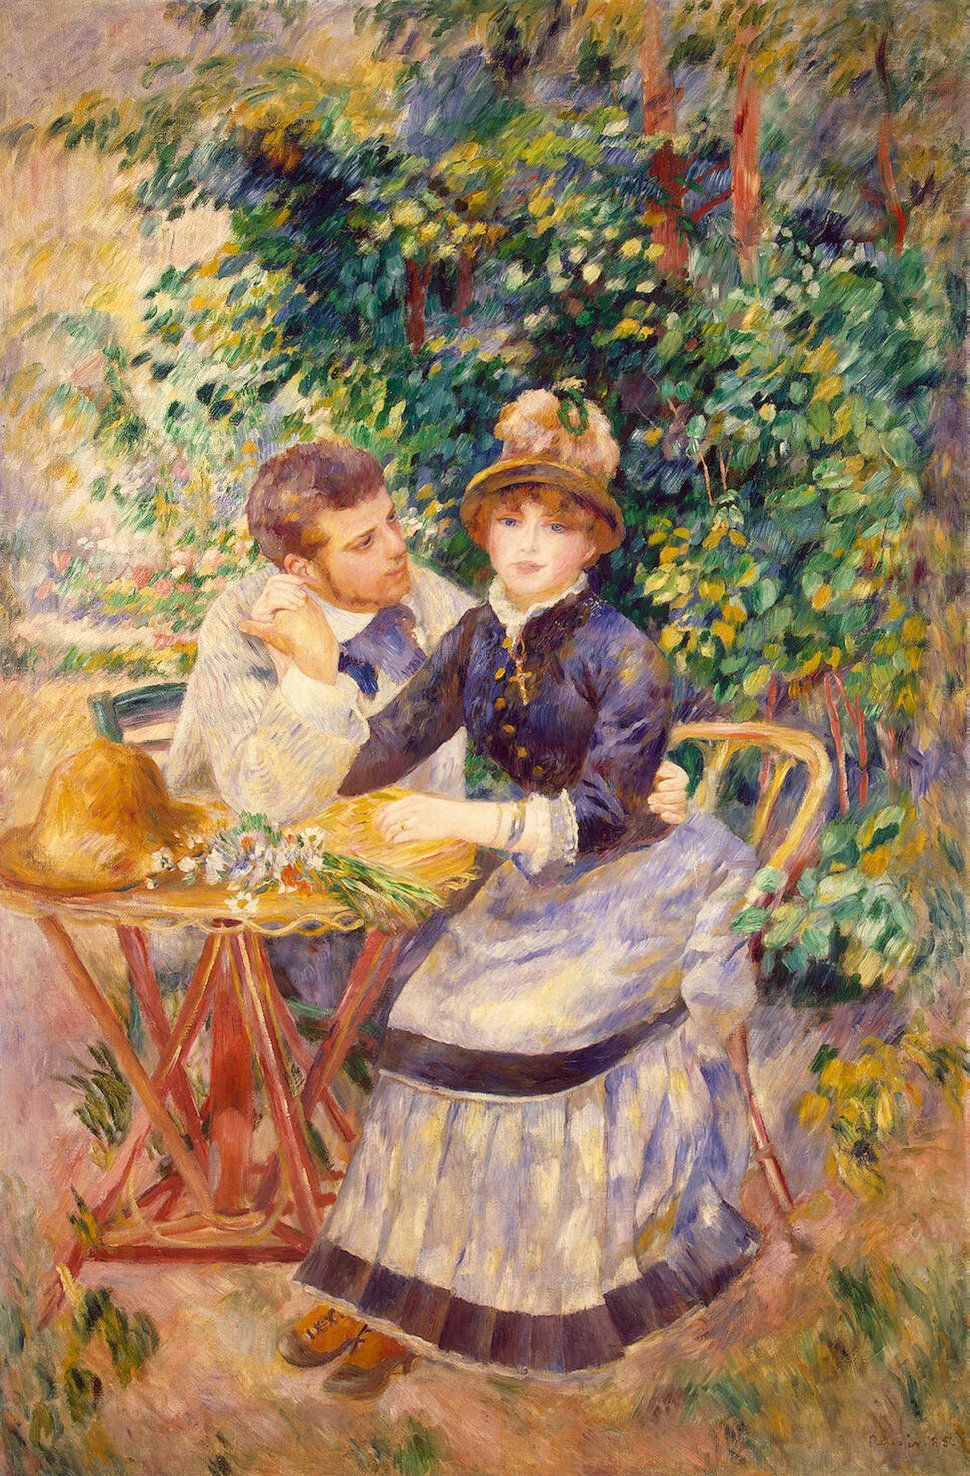 file pierre auguste renoir in the wikipedia